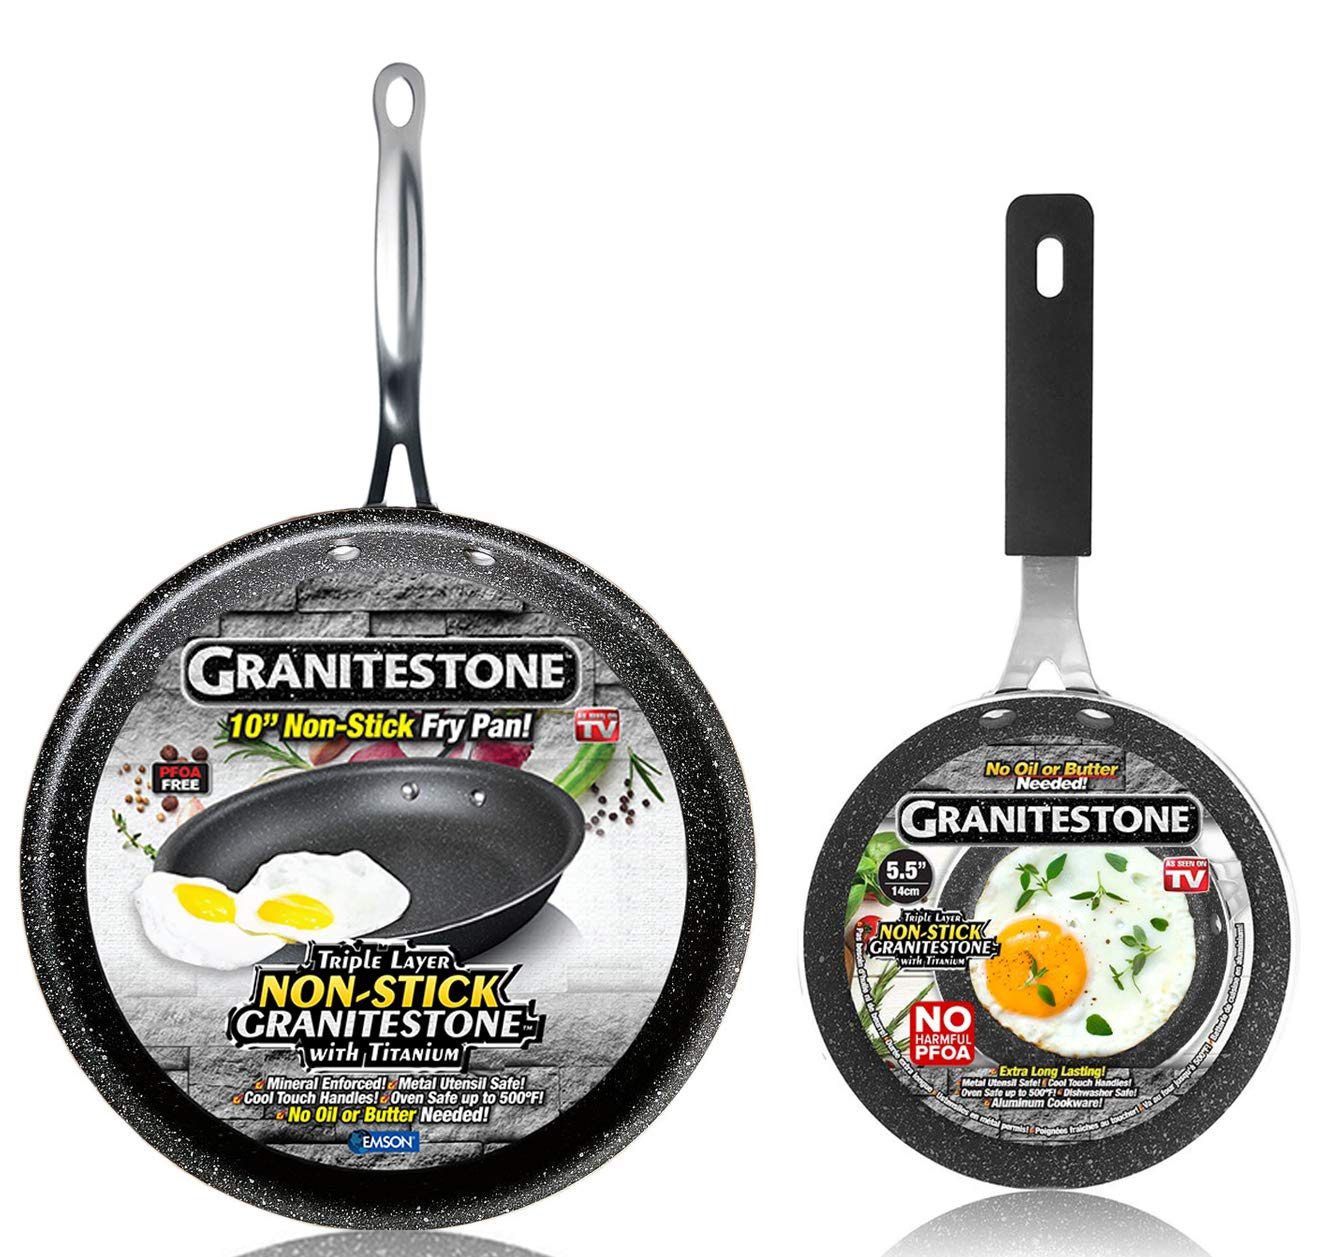 GRANITESTONE 10'' Frying Pan Skillet with 5.5'' Eggpan, Non-stick, No-warp, Mineral-enforced, PFOA-Free, Dishwasher-safe As Seen On TV by Granitestone (Image #1)